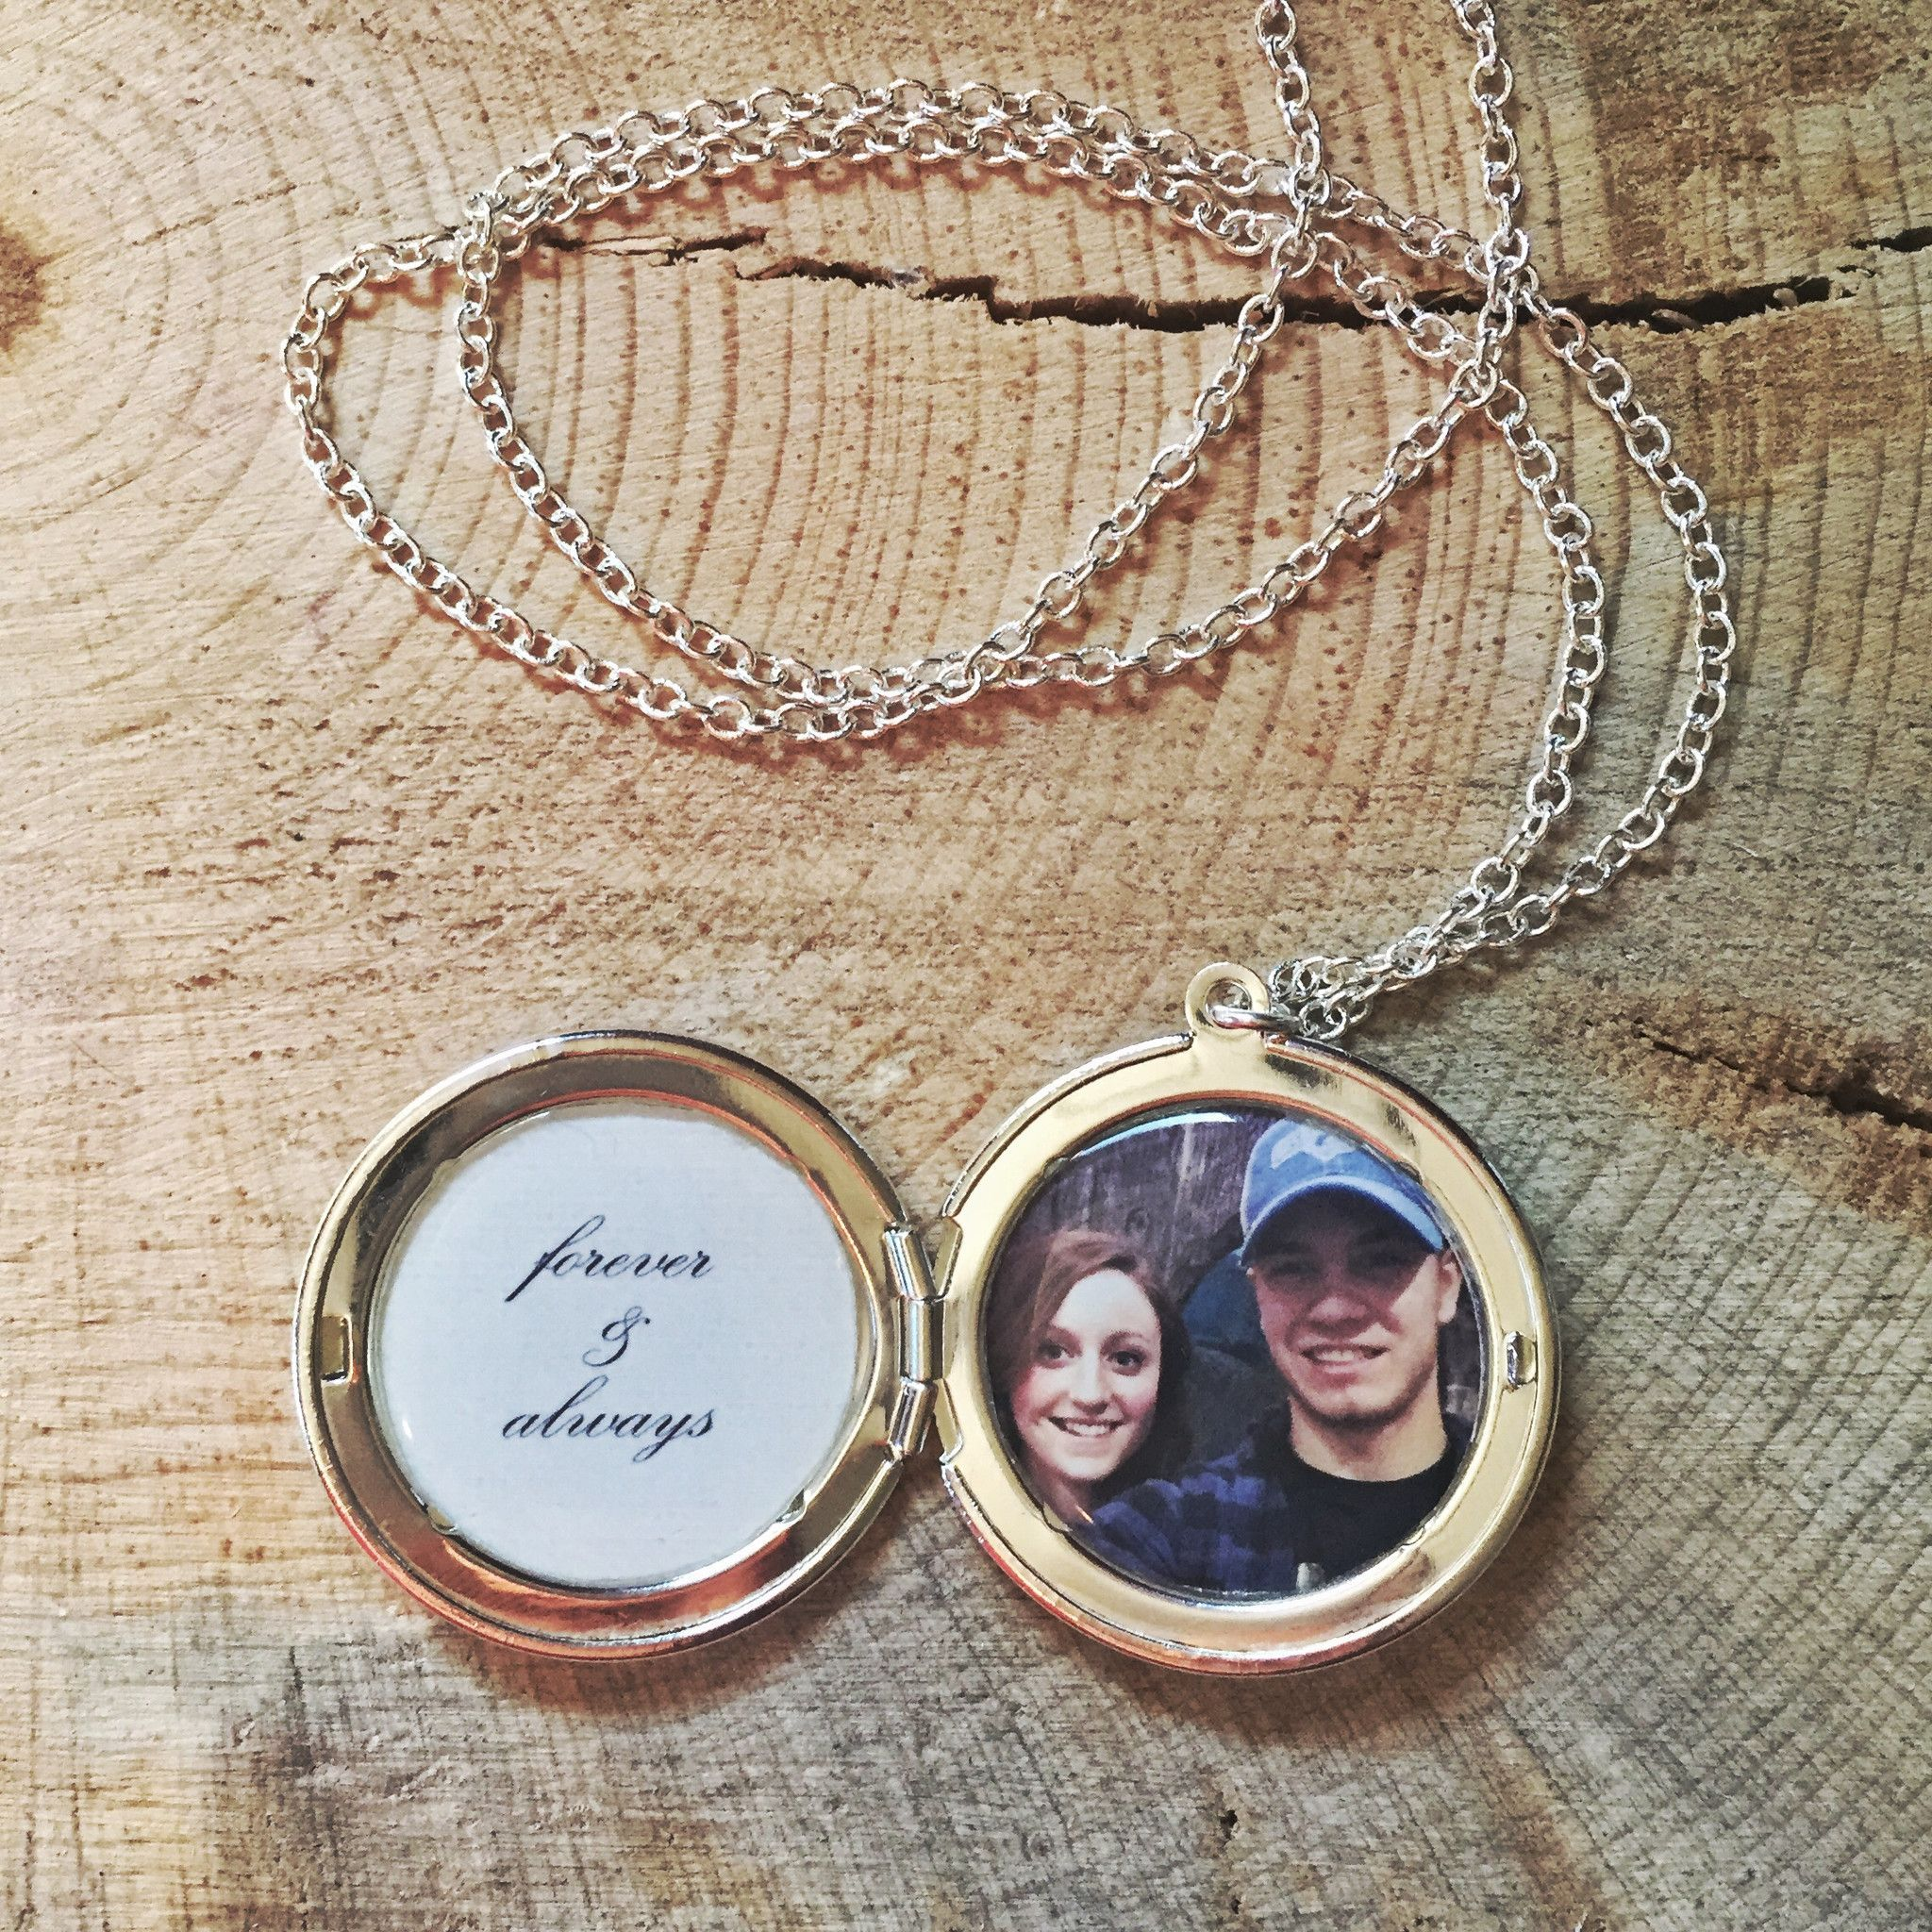 gracie message lockets secret original brass egg by necklace graciecollins locket product collins